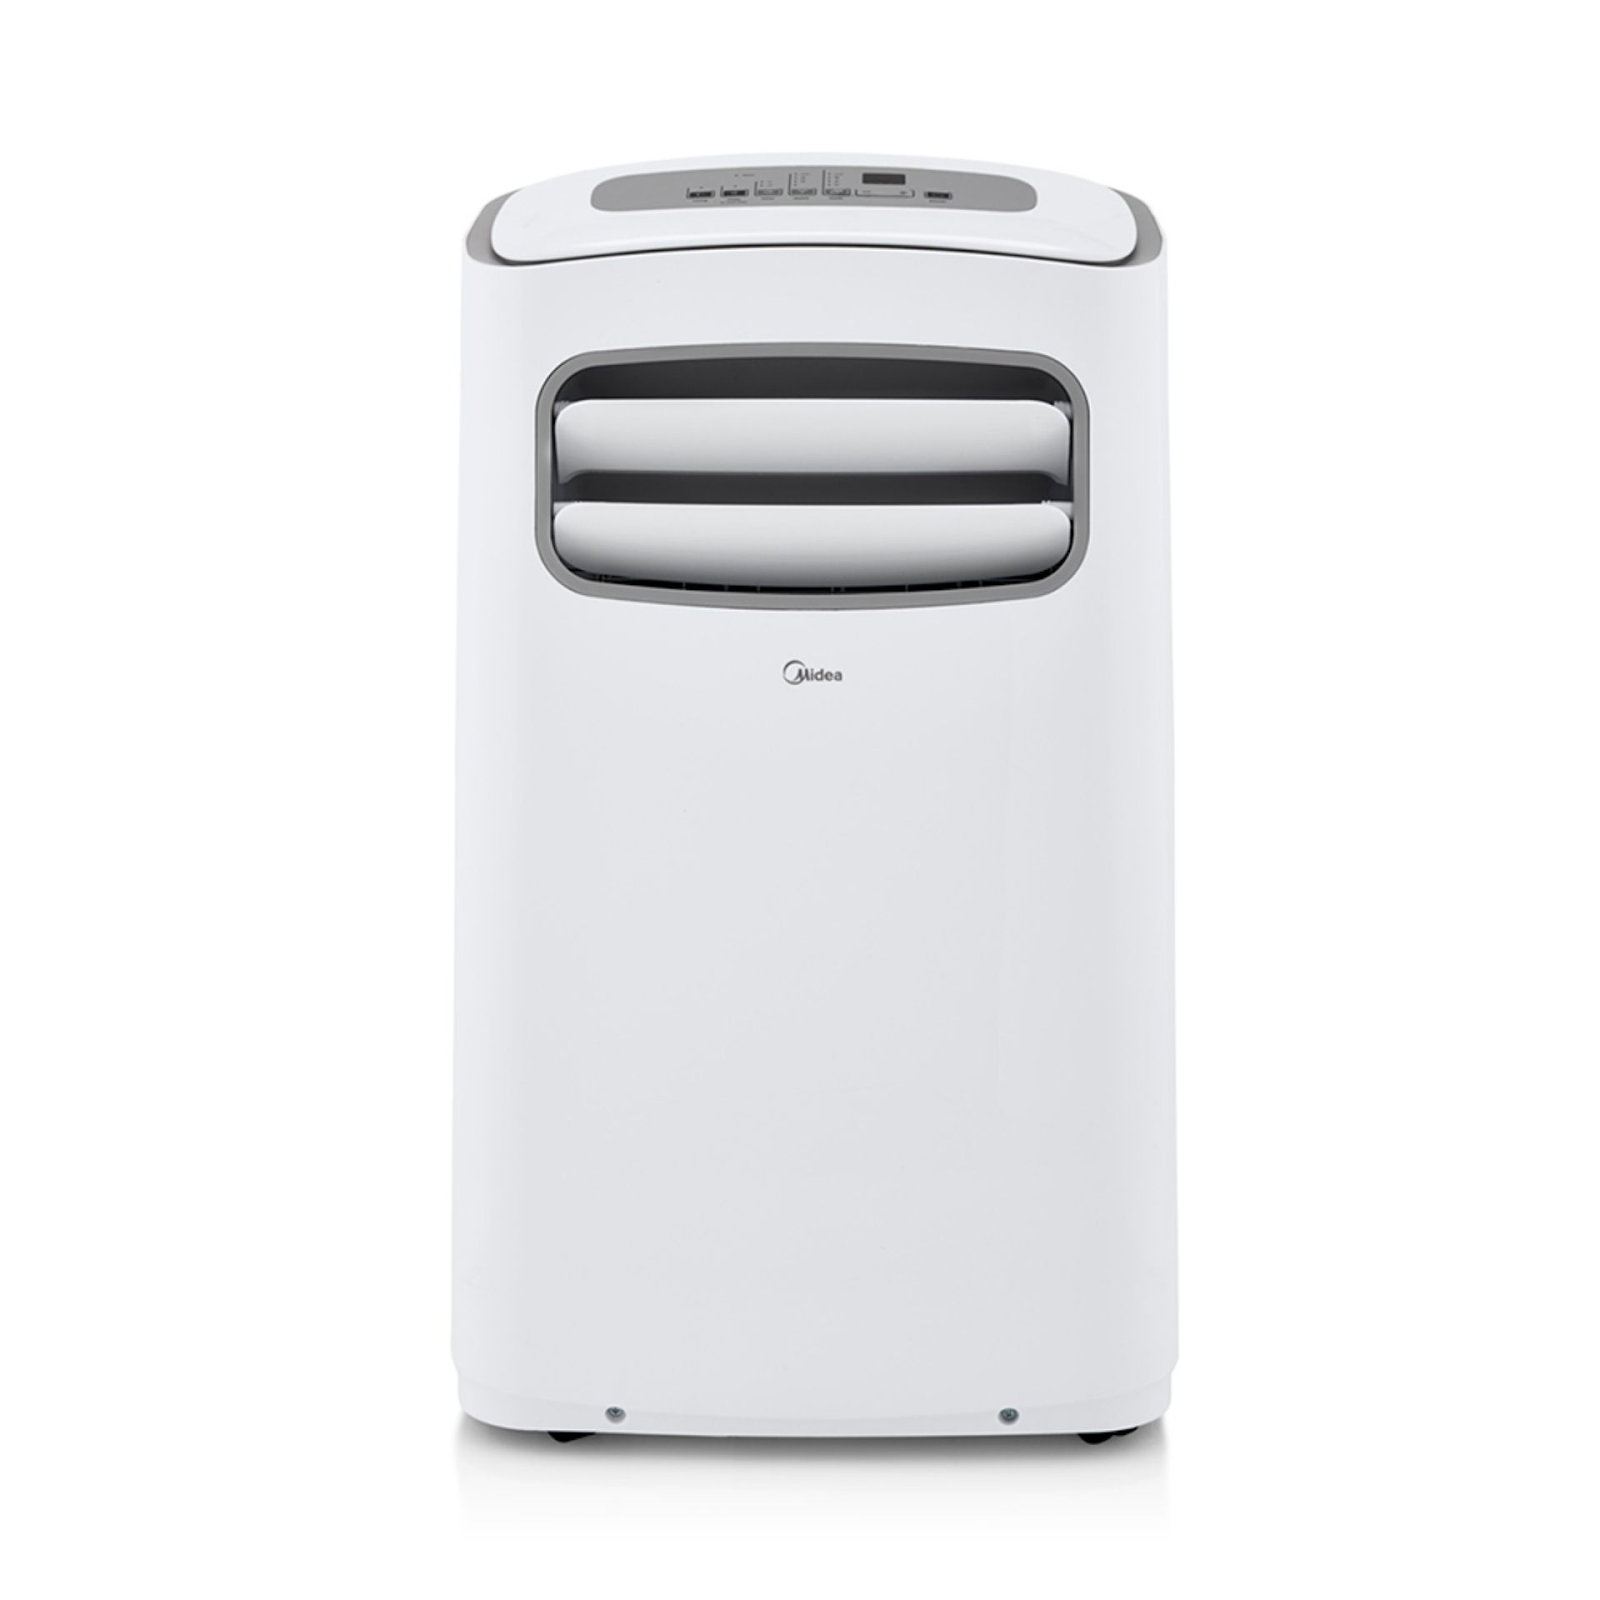 Midea MPF10CR81-E aircon model